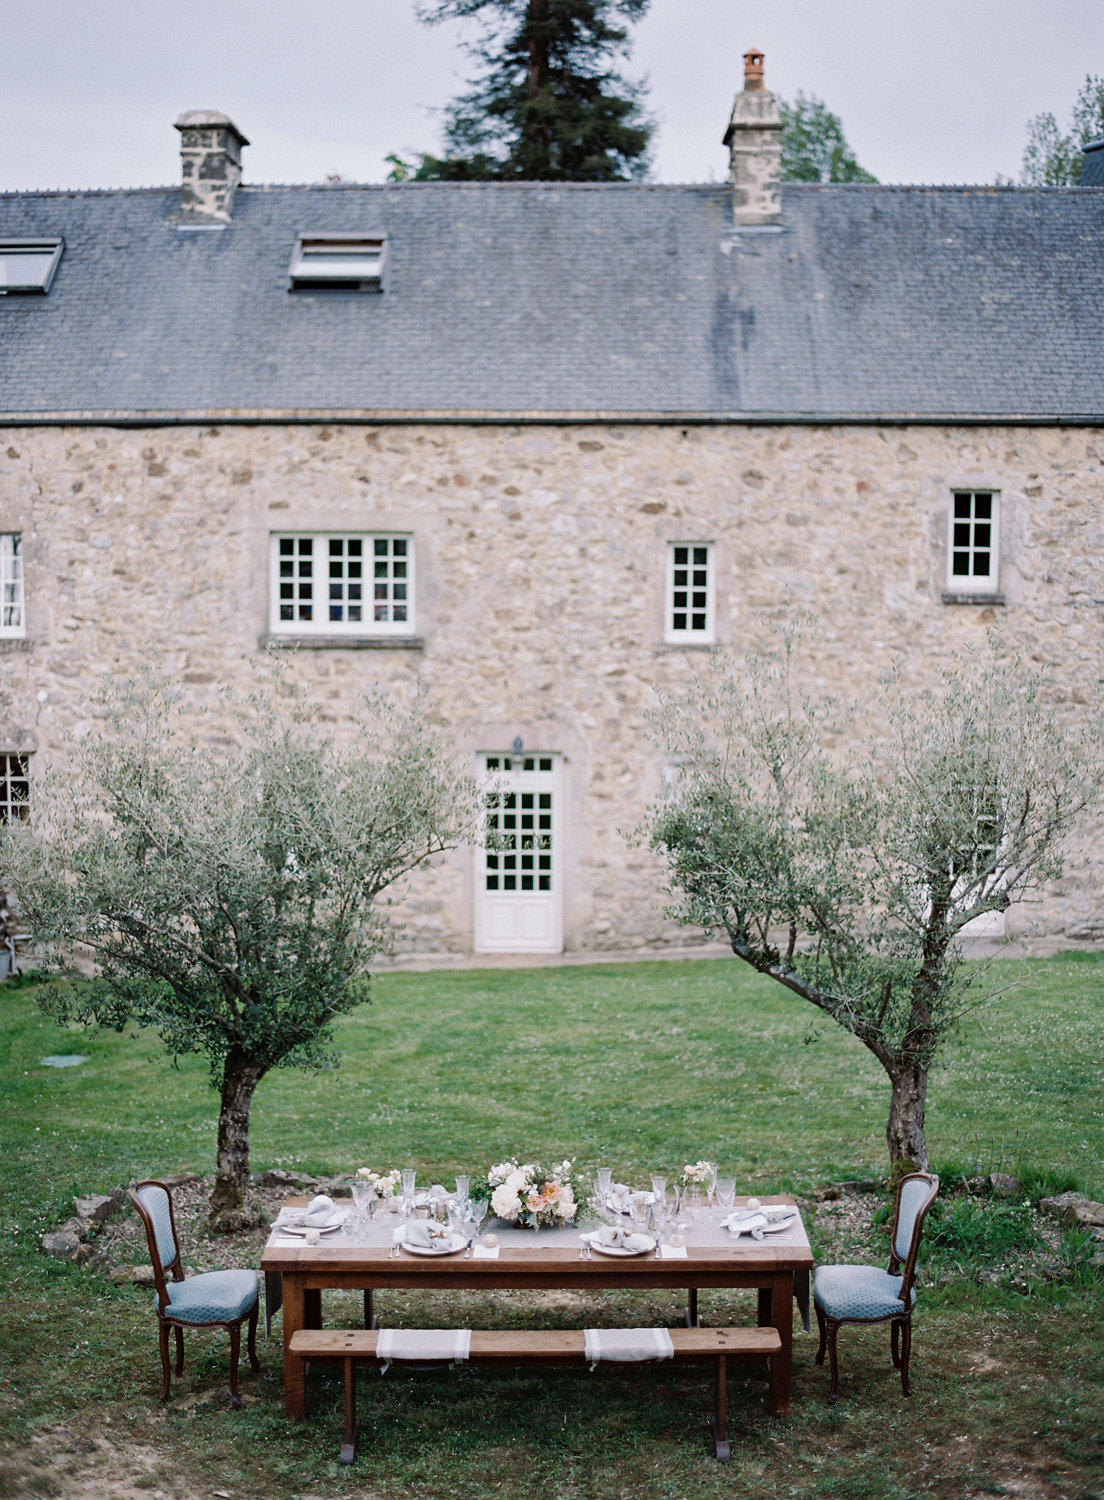 france-normandy-destination-wedding-photographer-max-gill-jill-lefleur-melanie-gabrielle-photography-17 copy